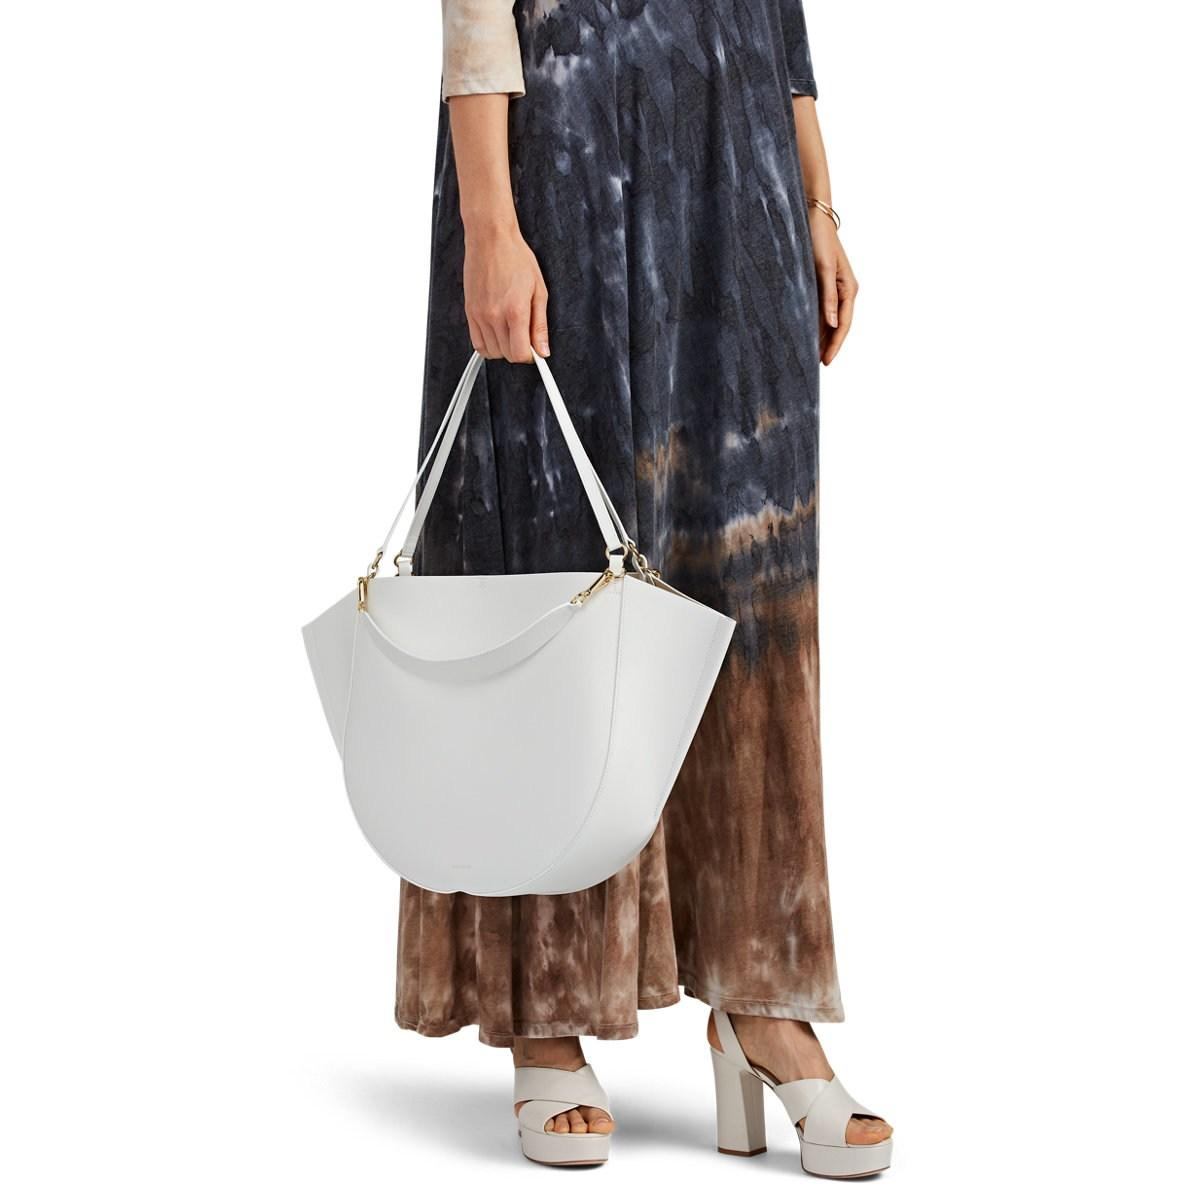 5d7d3988bf Wandler White Mia Leather Tote Bag in White - Save 28% - Lyst